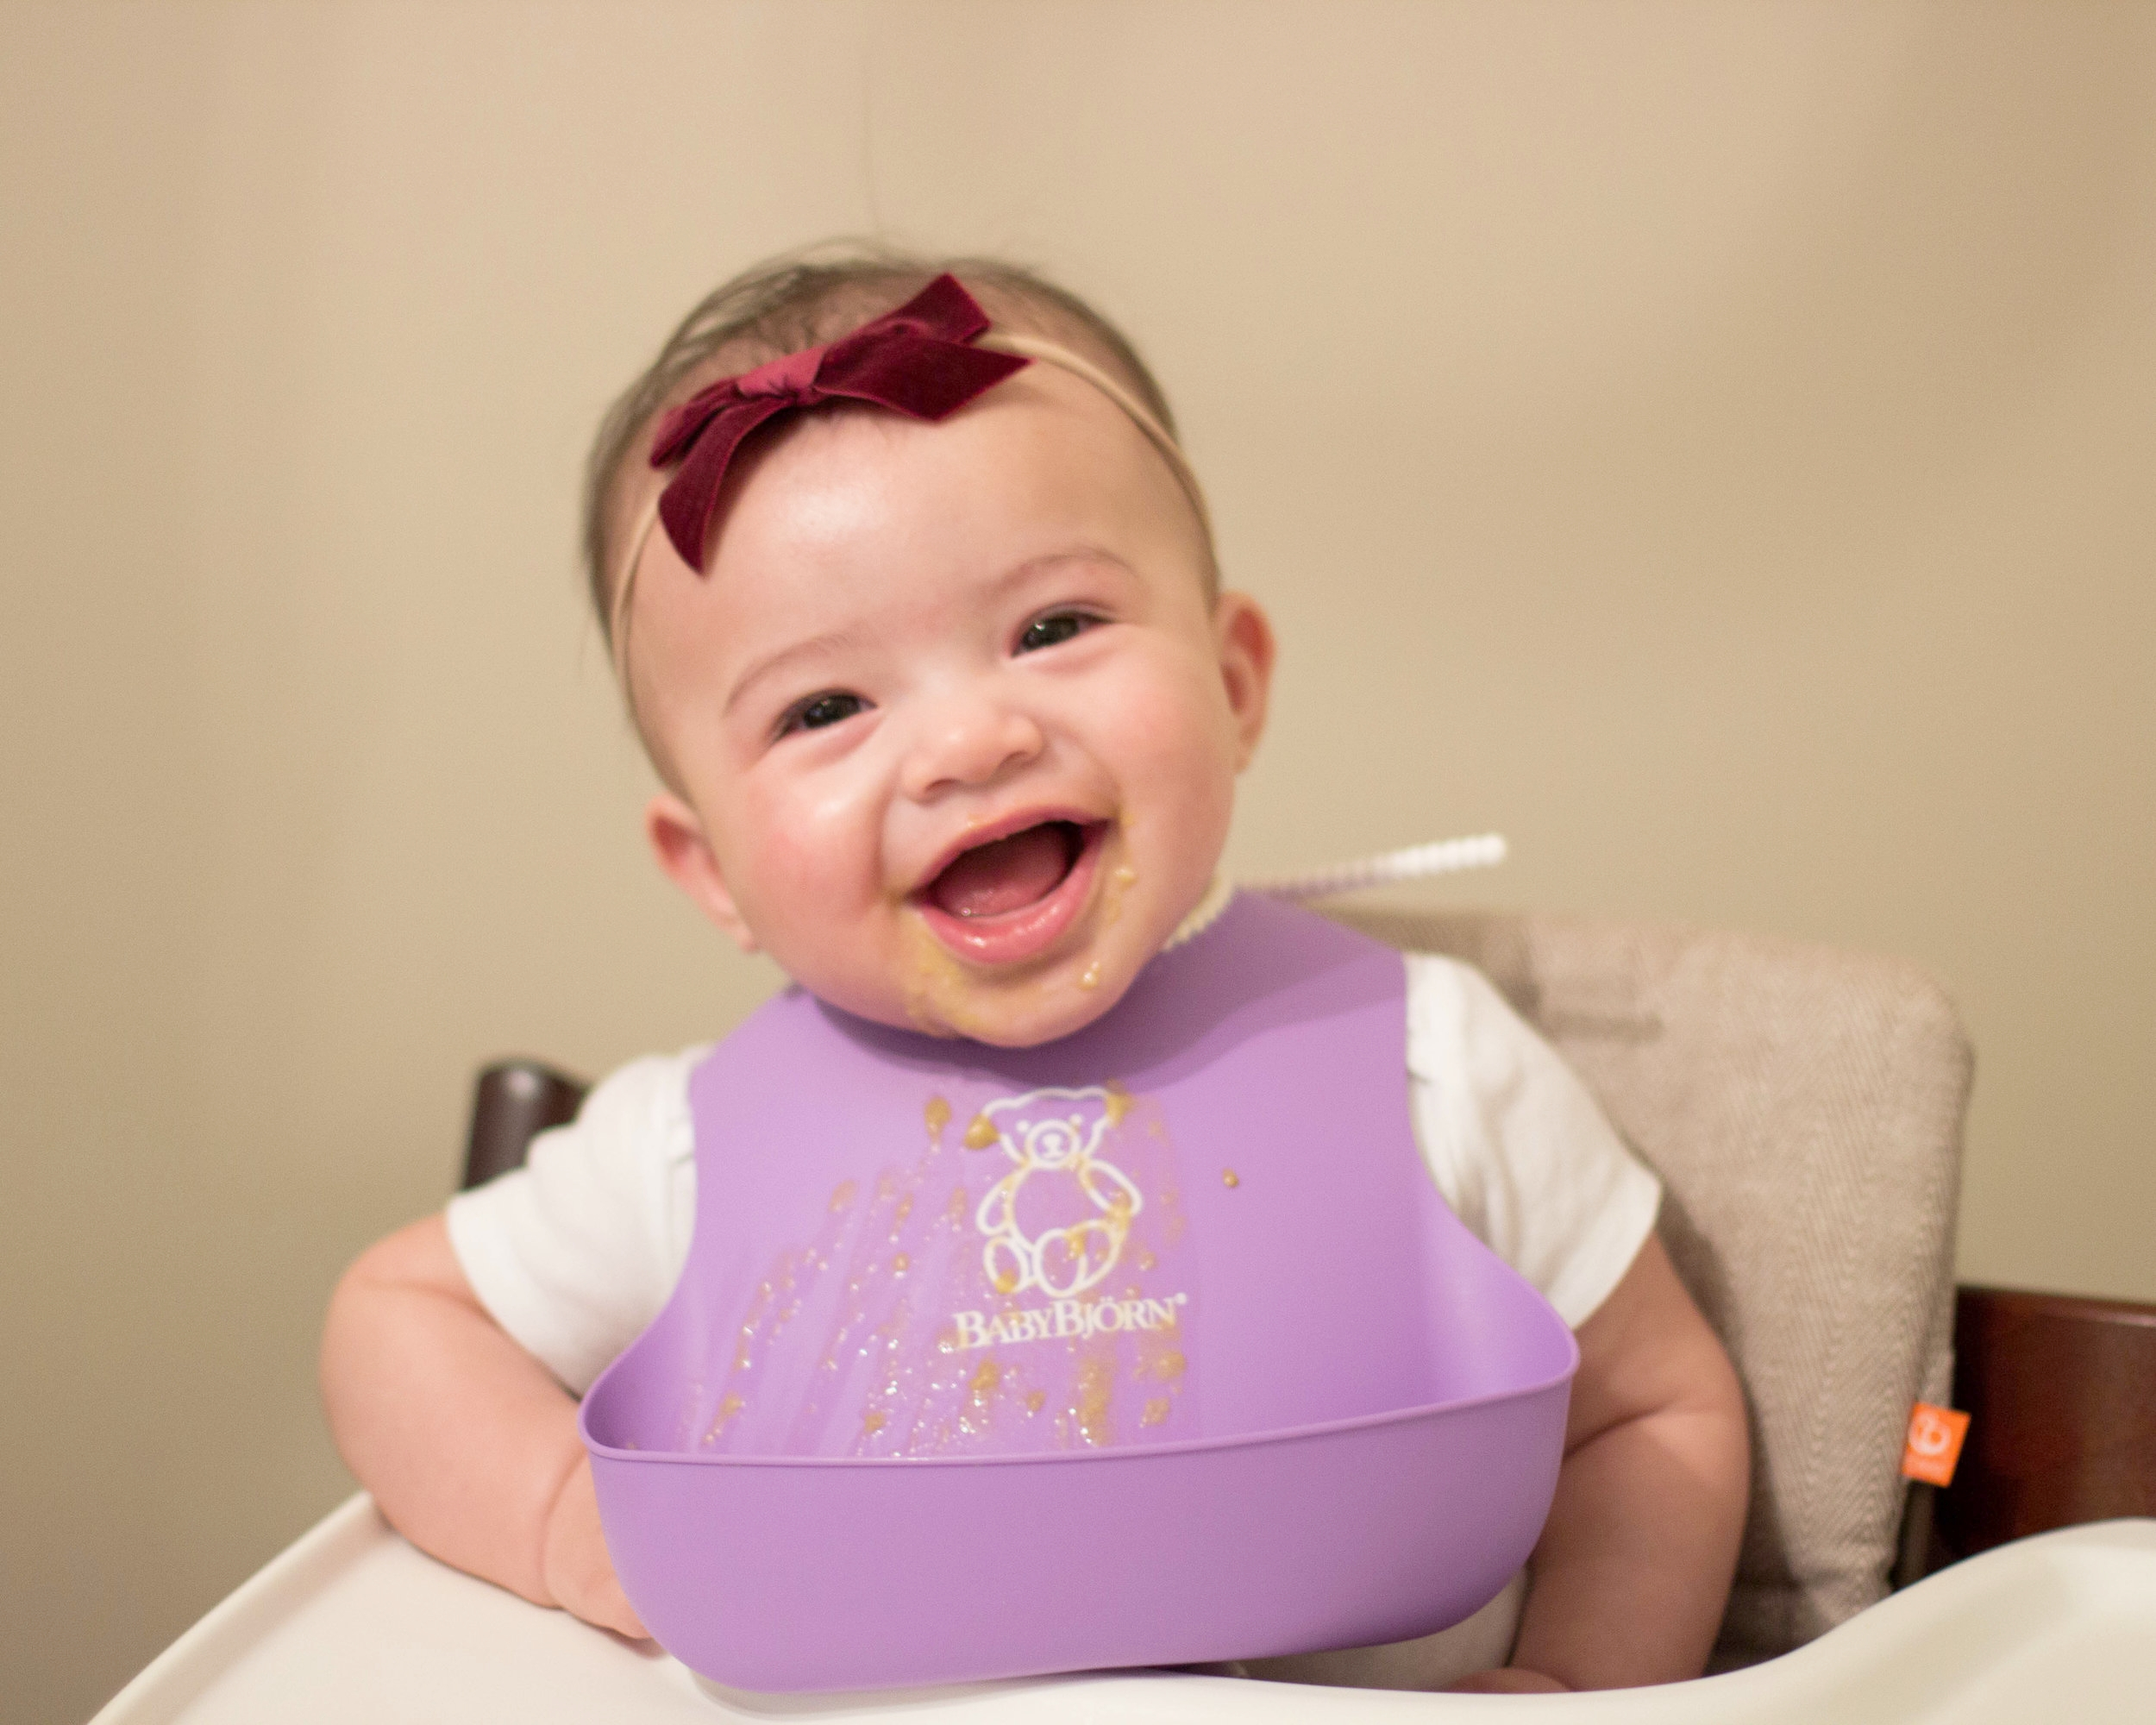 6 Months Old  Headband:  Little Poppy Co ; Bib:  Baby Bjorn ; High Chair:  Stokke